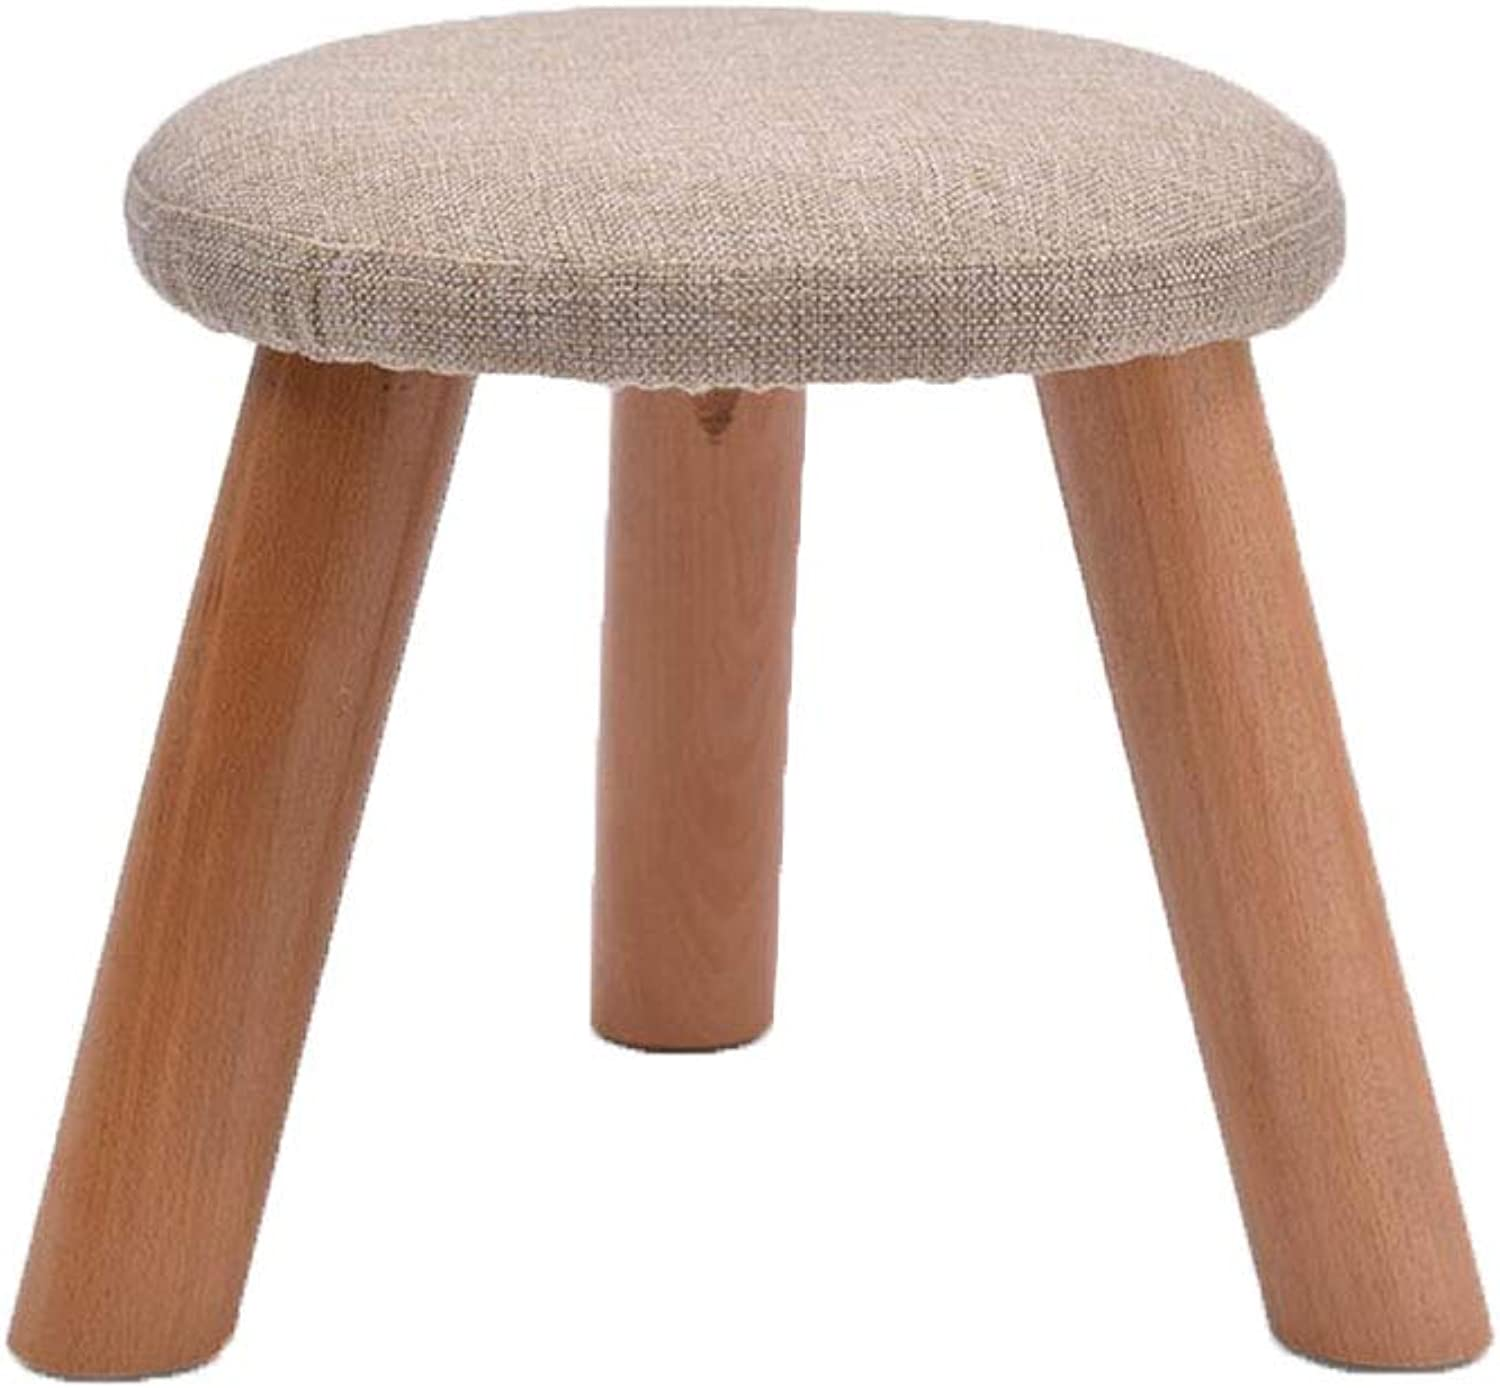 XUERUI Furniture Stools Chair Footstool Upholstered Round Modern Luxury Wooden Removable Linen Cover Strong Stability (color   T8)